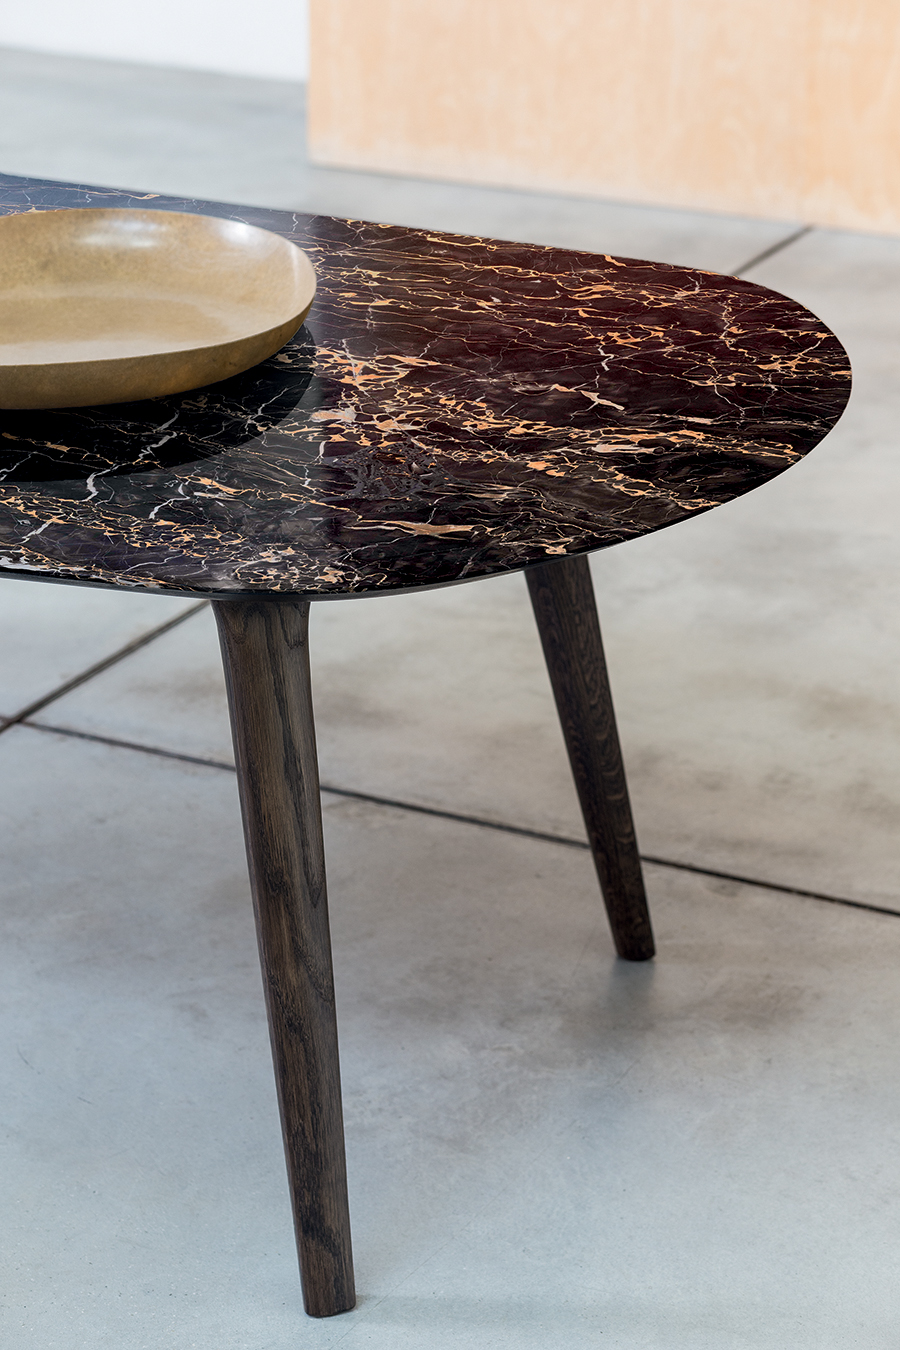 Ademar table top in Portoro marble